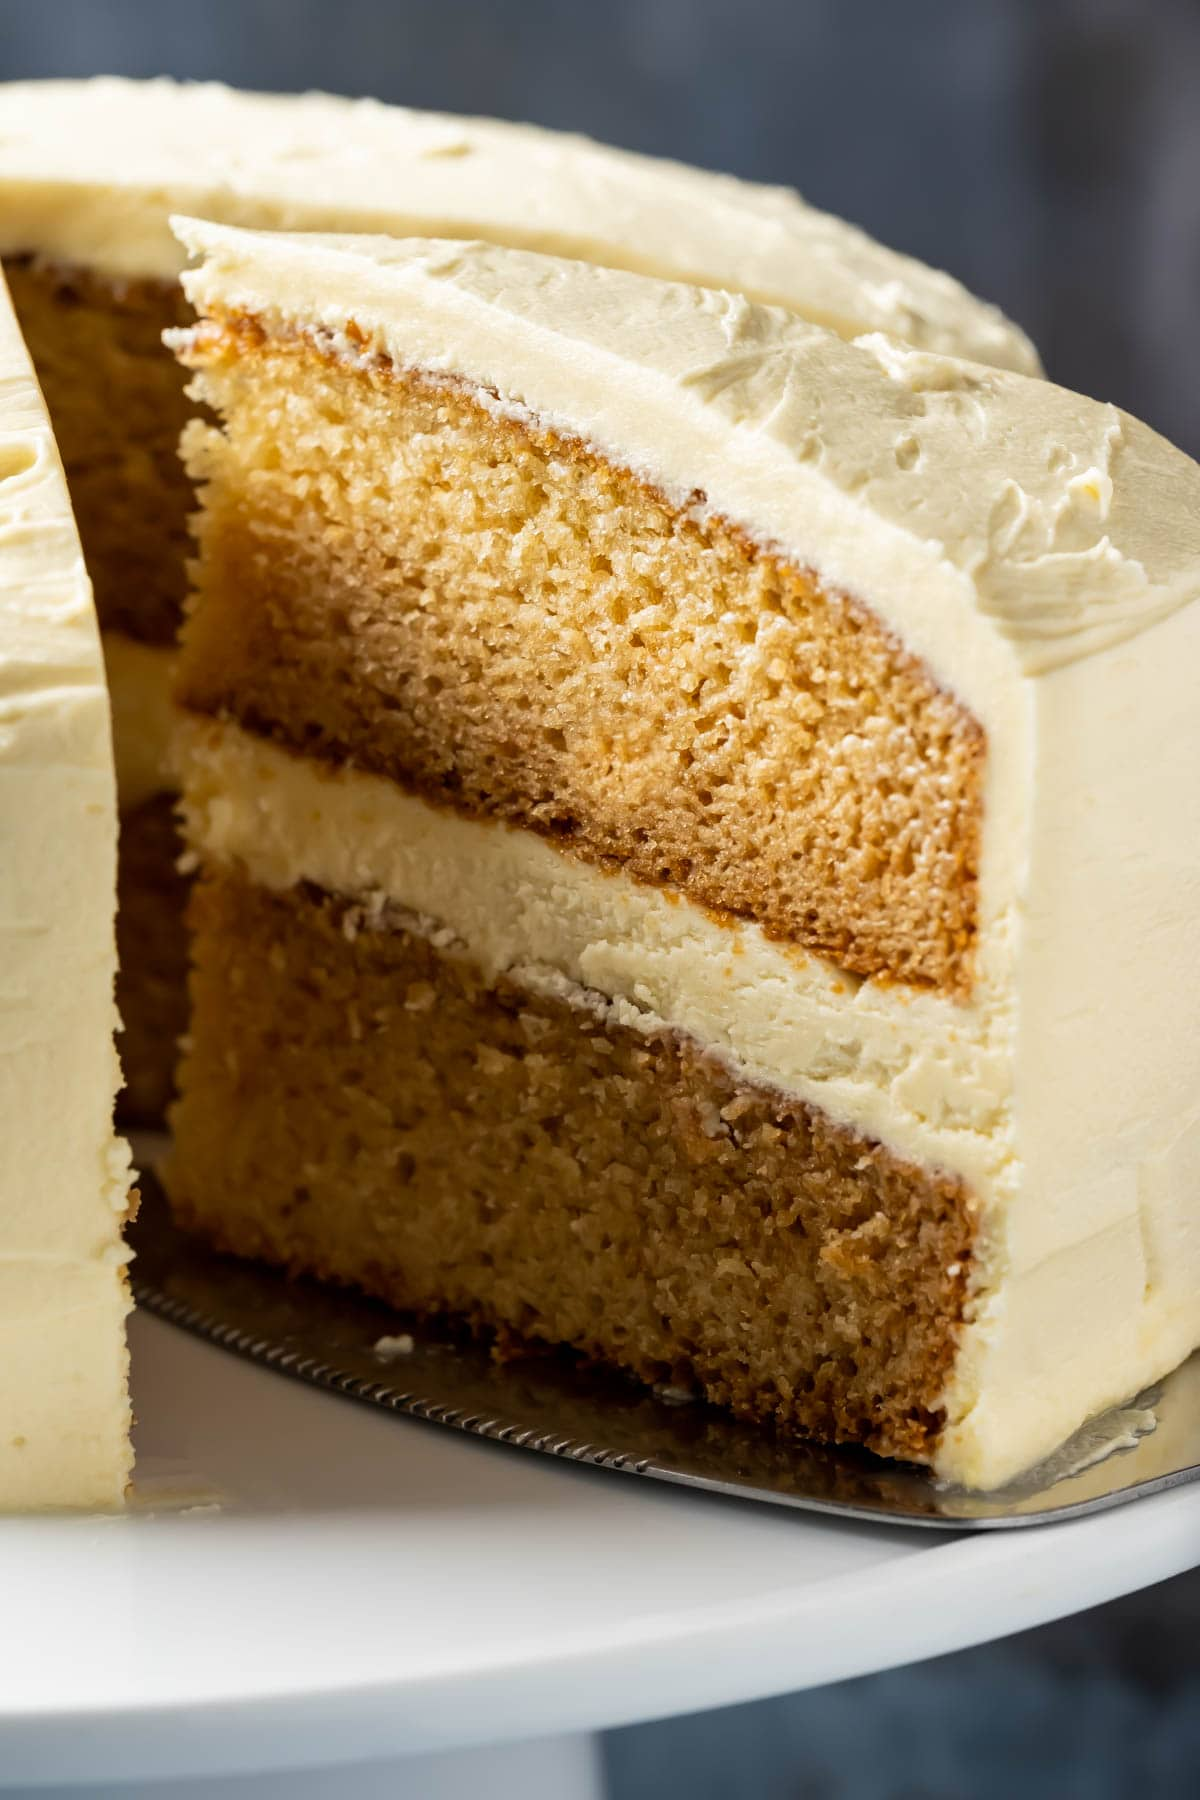 Slice of eggless vanilla cake on a cake lifter, ready to serve.